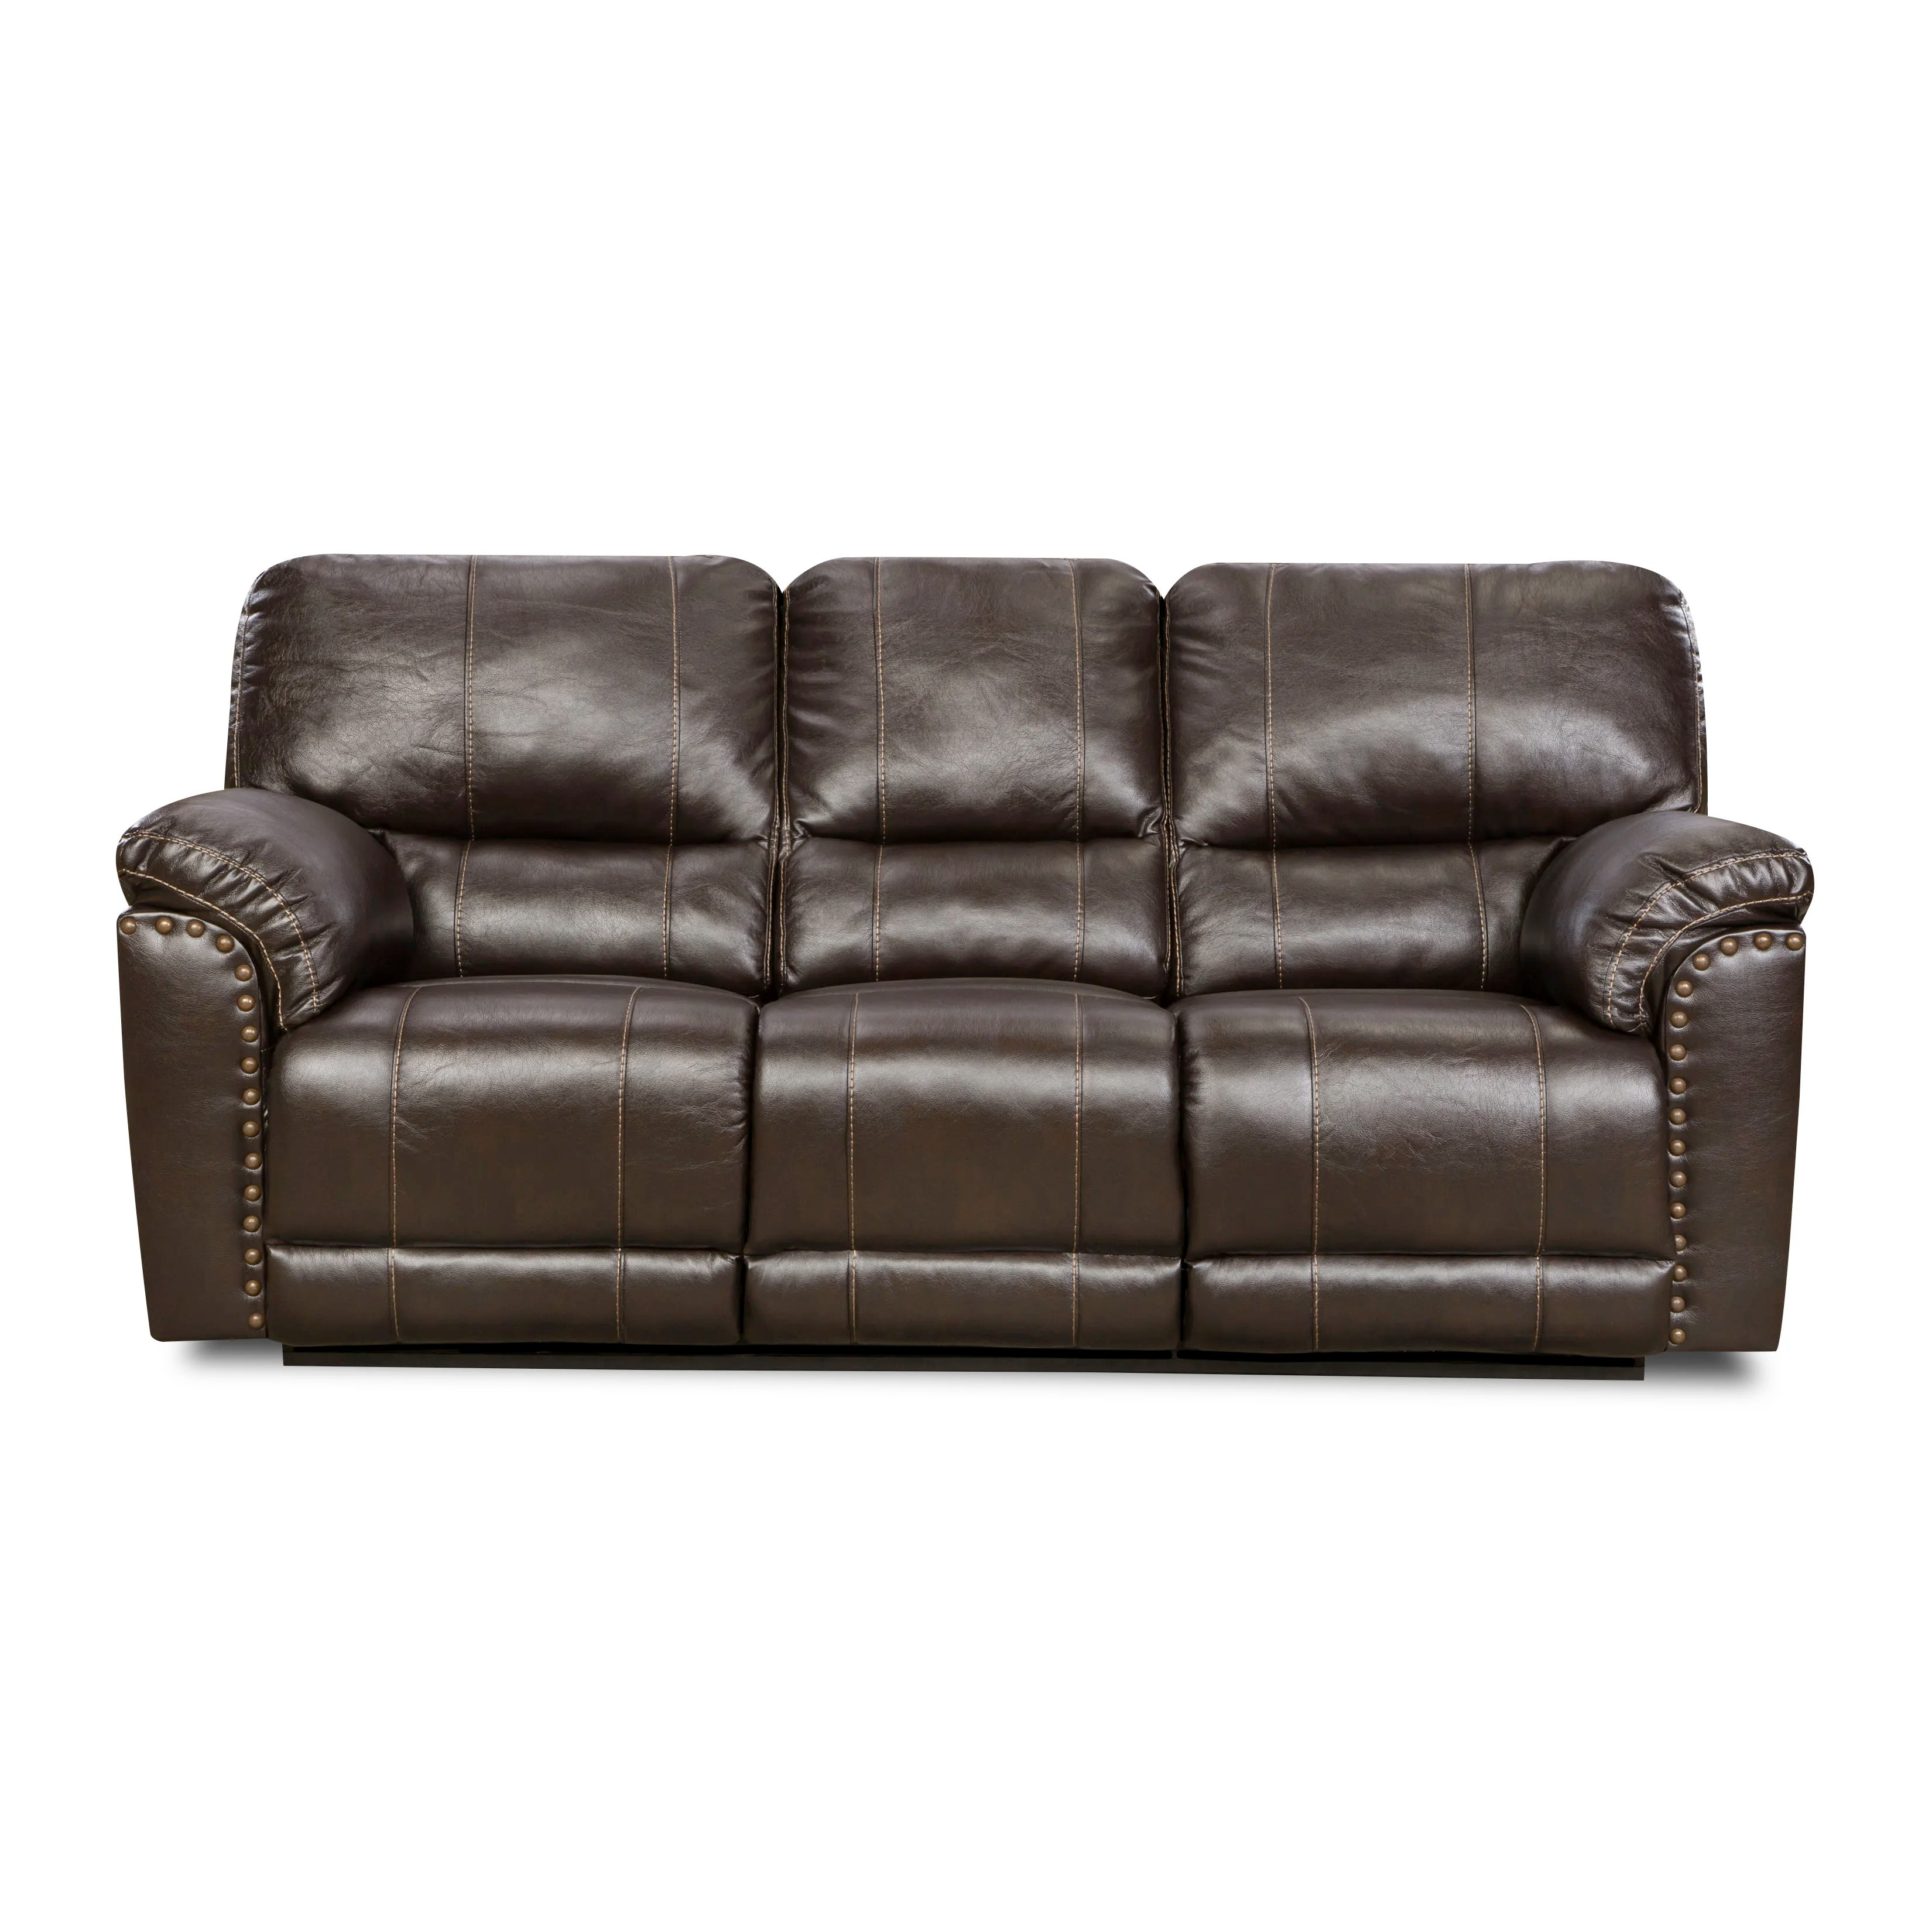 simmons beautyrest motion sofa reviews macy furniture sleepers alcott hill upholstery fisher